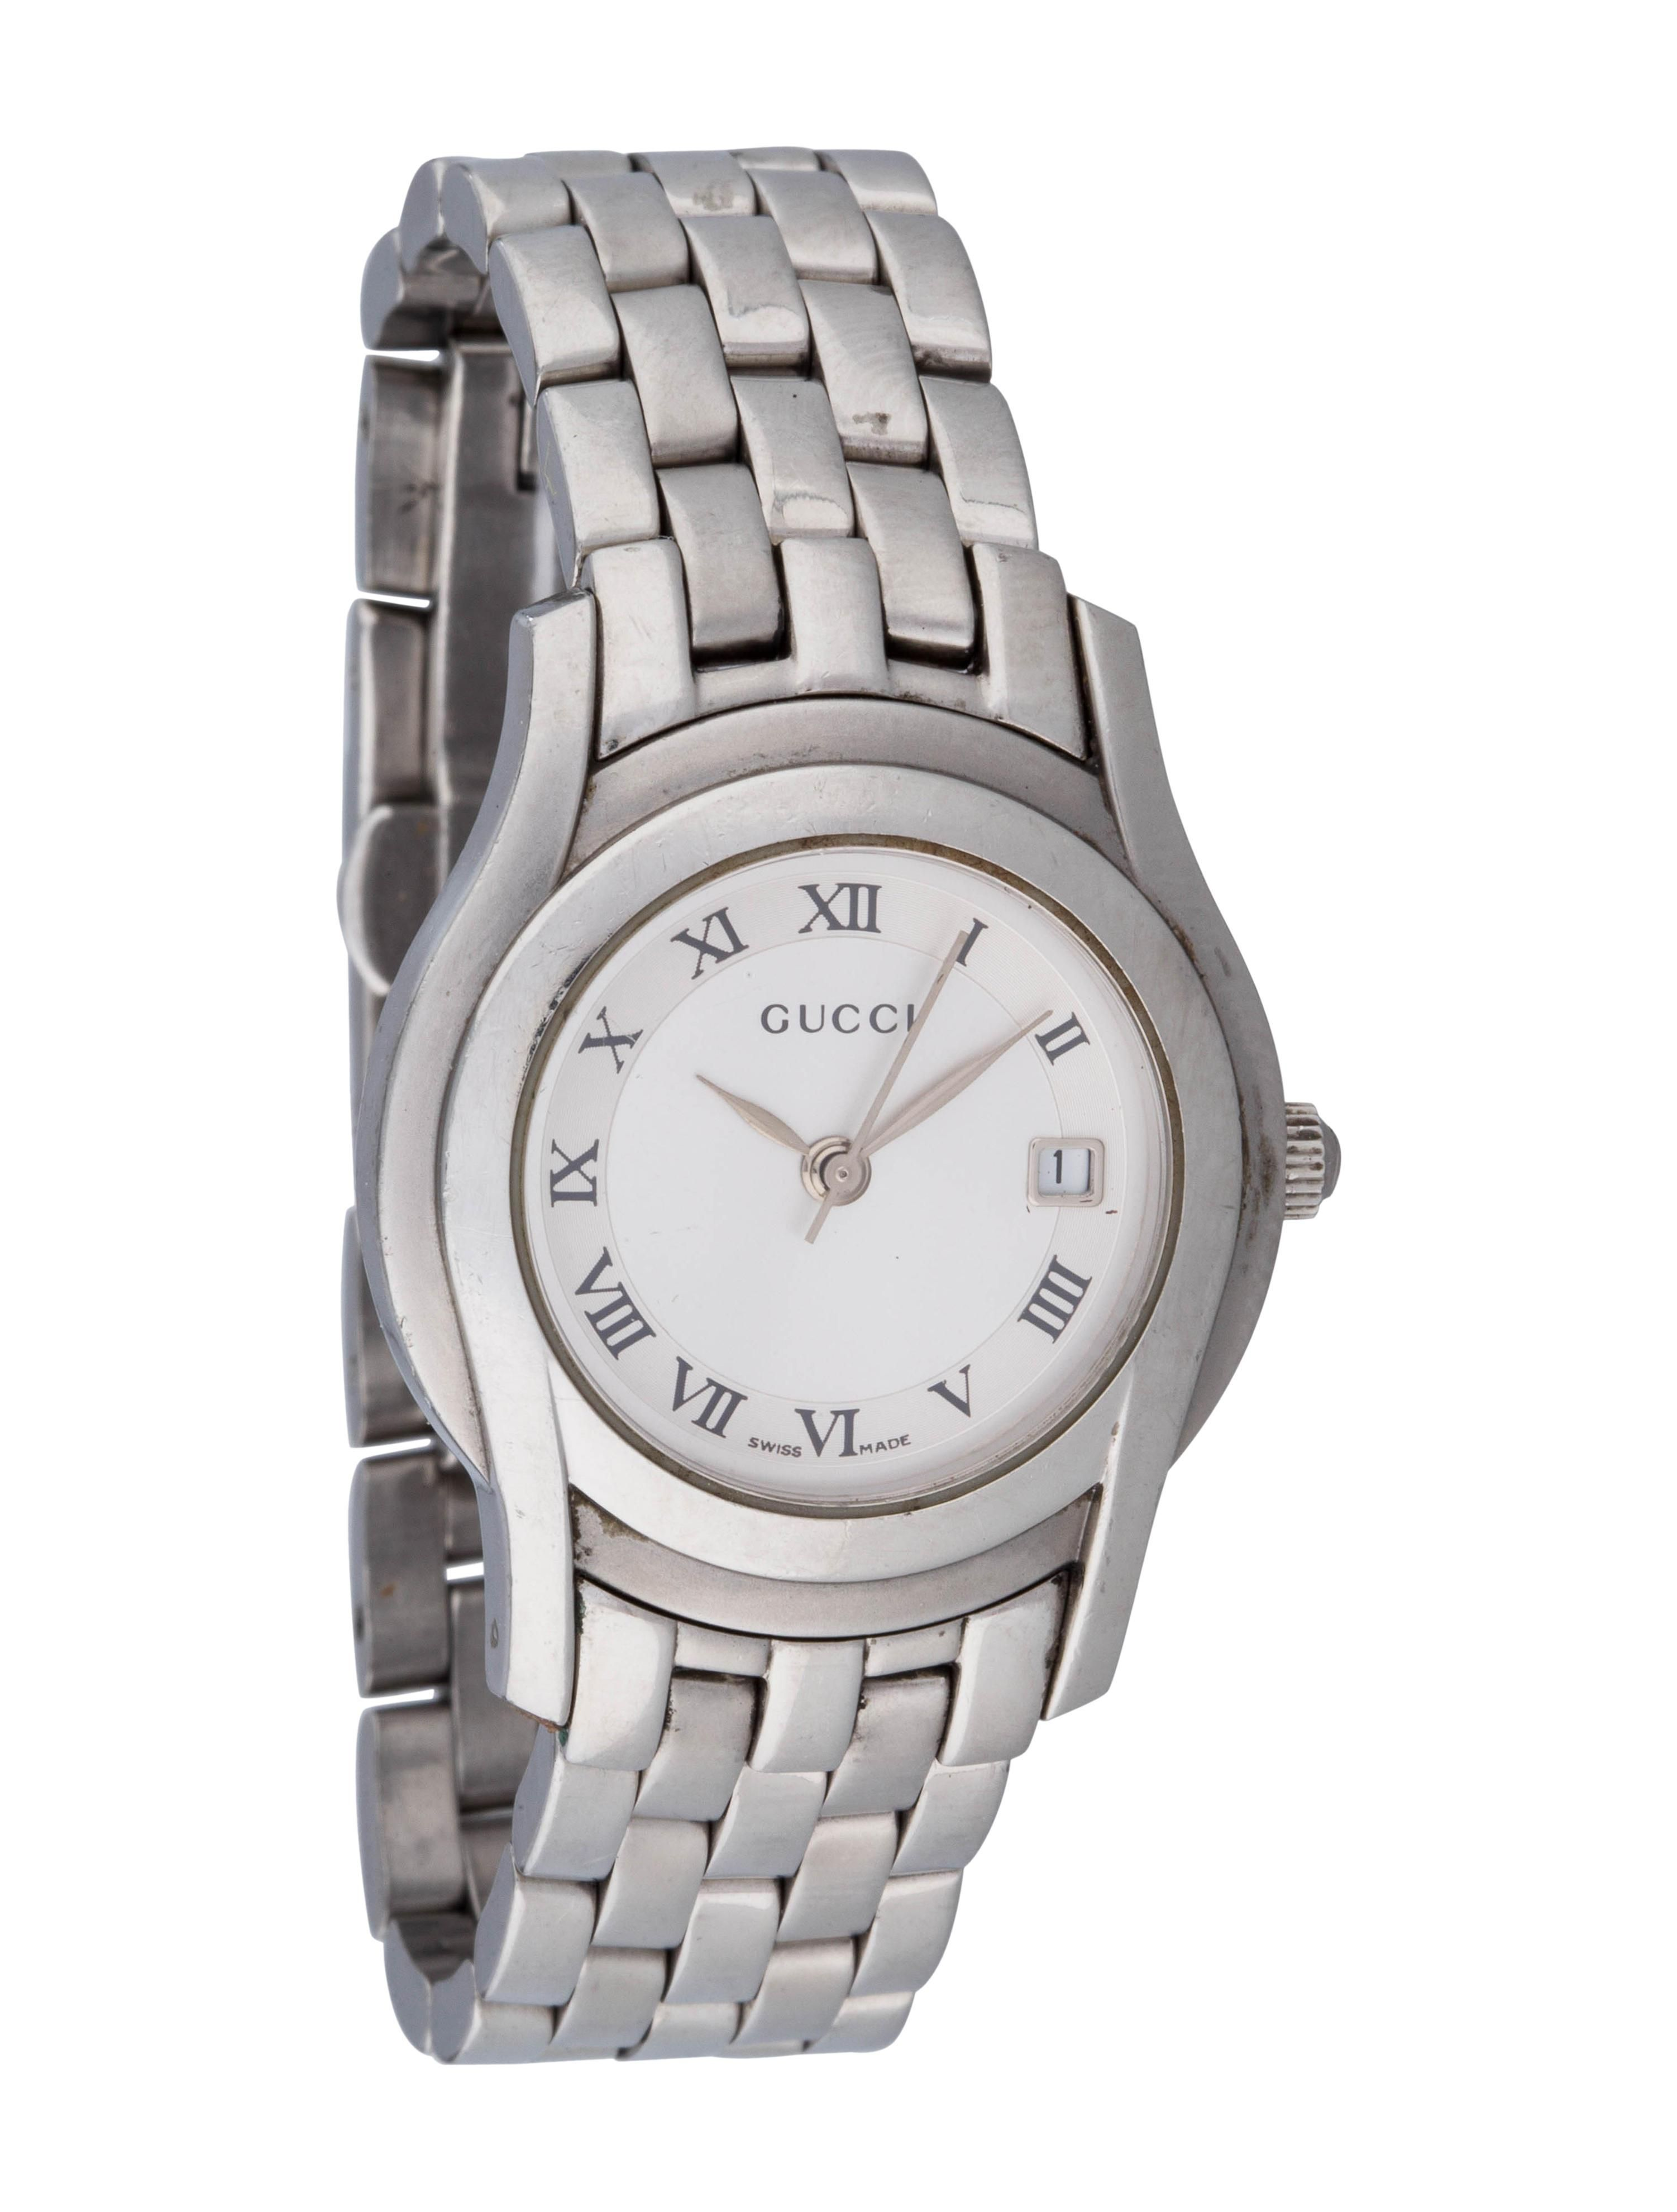 281f6ddee62 GUCCI 5500L Wrist Watch for Women Date Stainless Steel Silver Dial. Free  shipping and guaranteed authenticity on GUCCI 5500L Wrist Watch for Women  Date ...